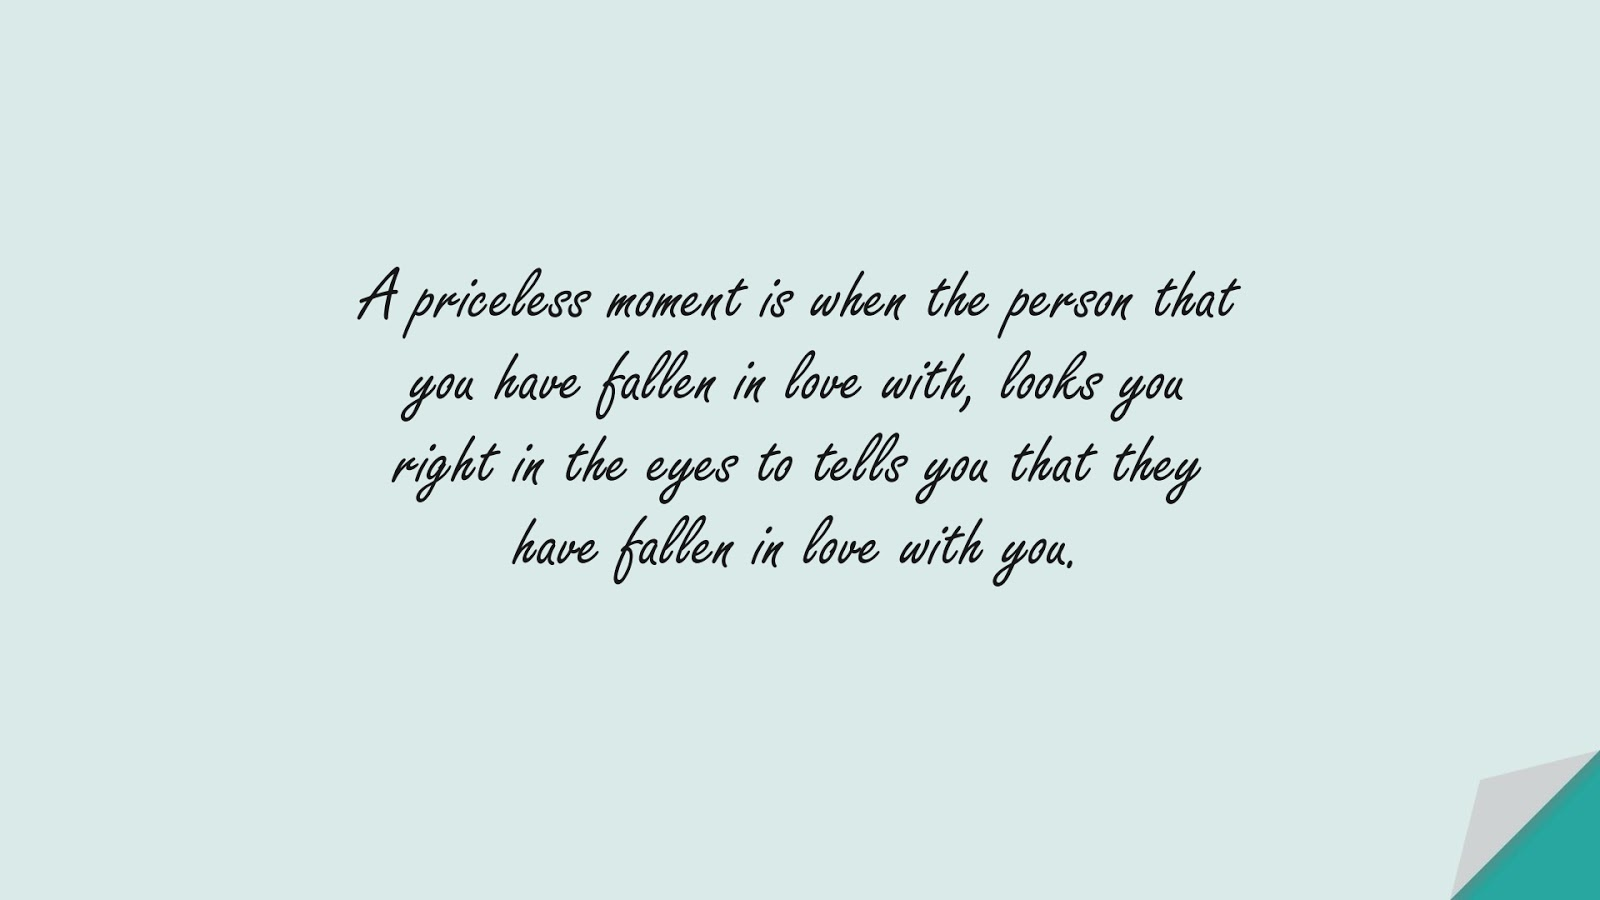 A priceless moment is when the person that you have fallen in love with, looks you right in the eyes to tells you that they have fallen in love with you.FALSE